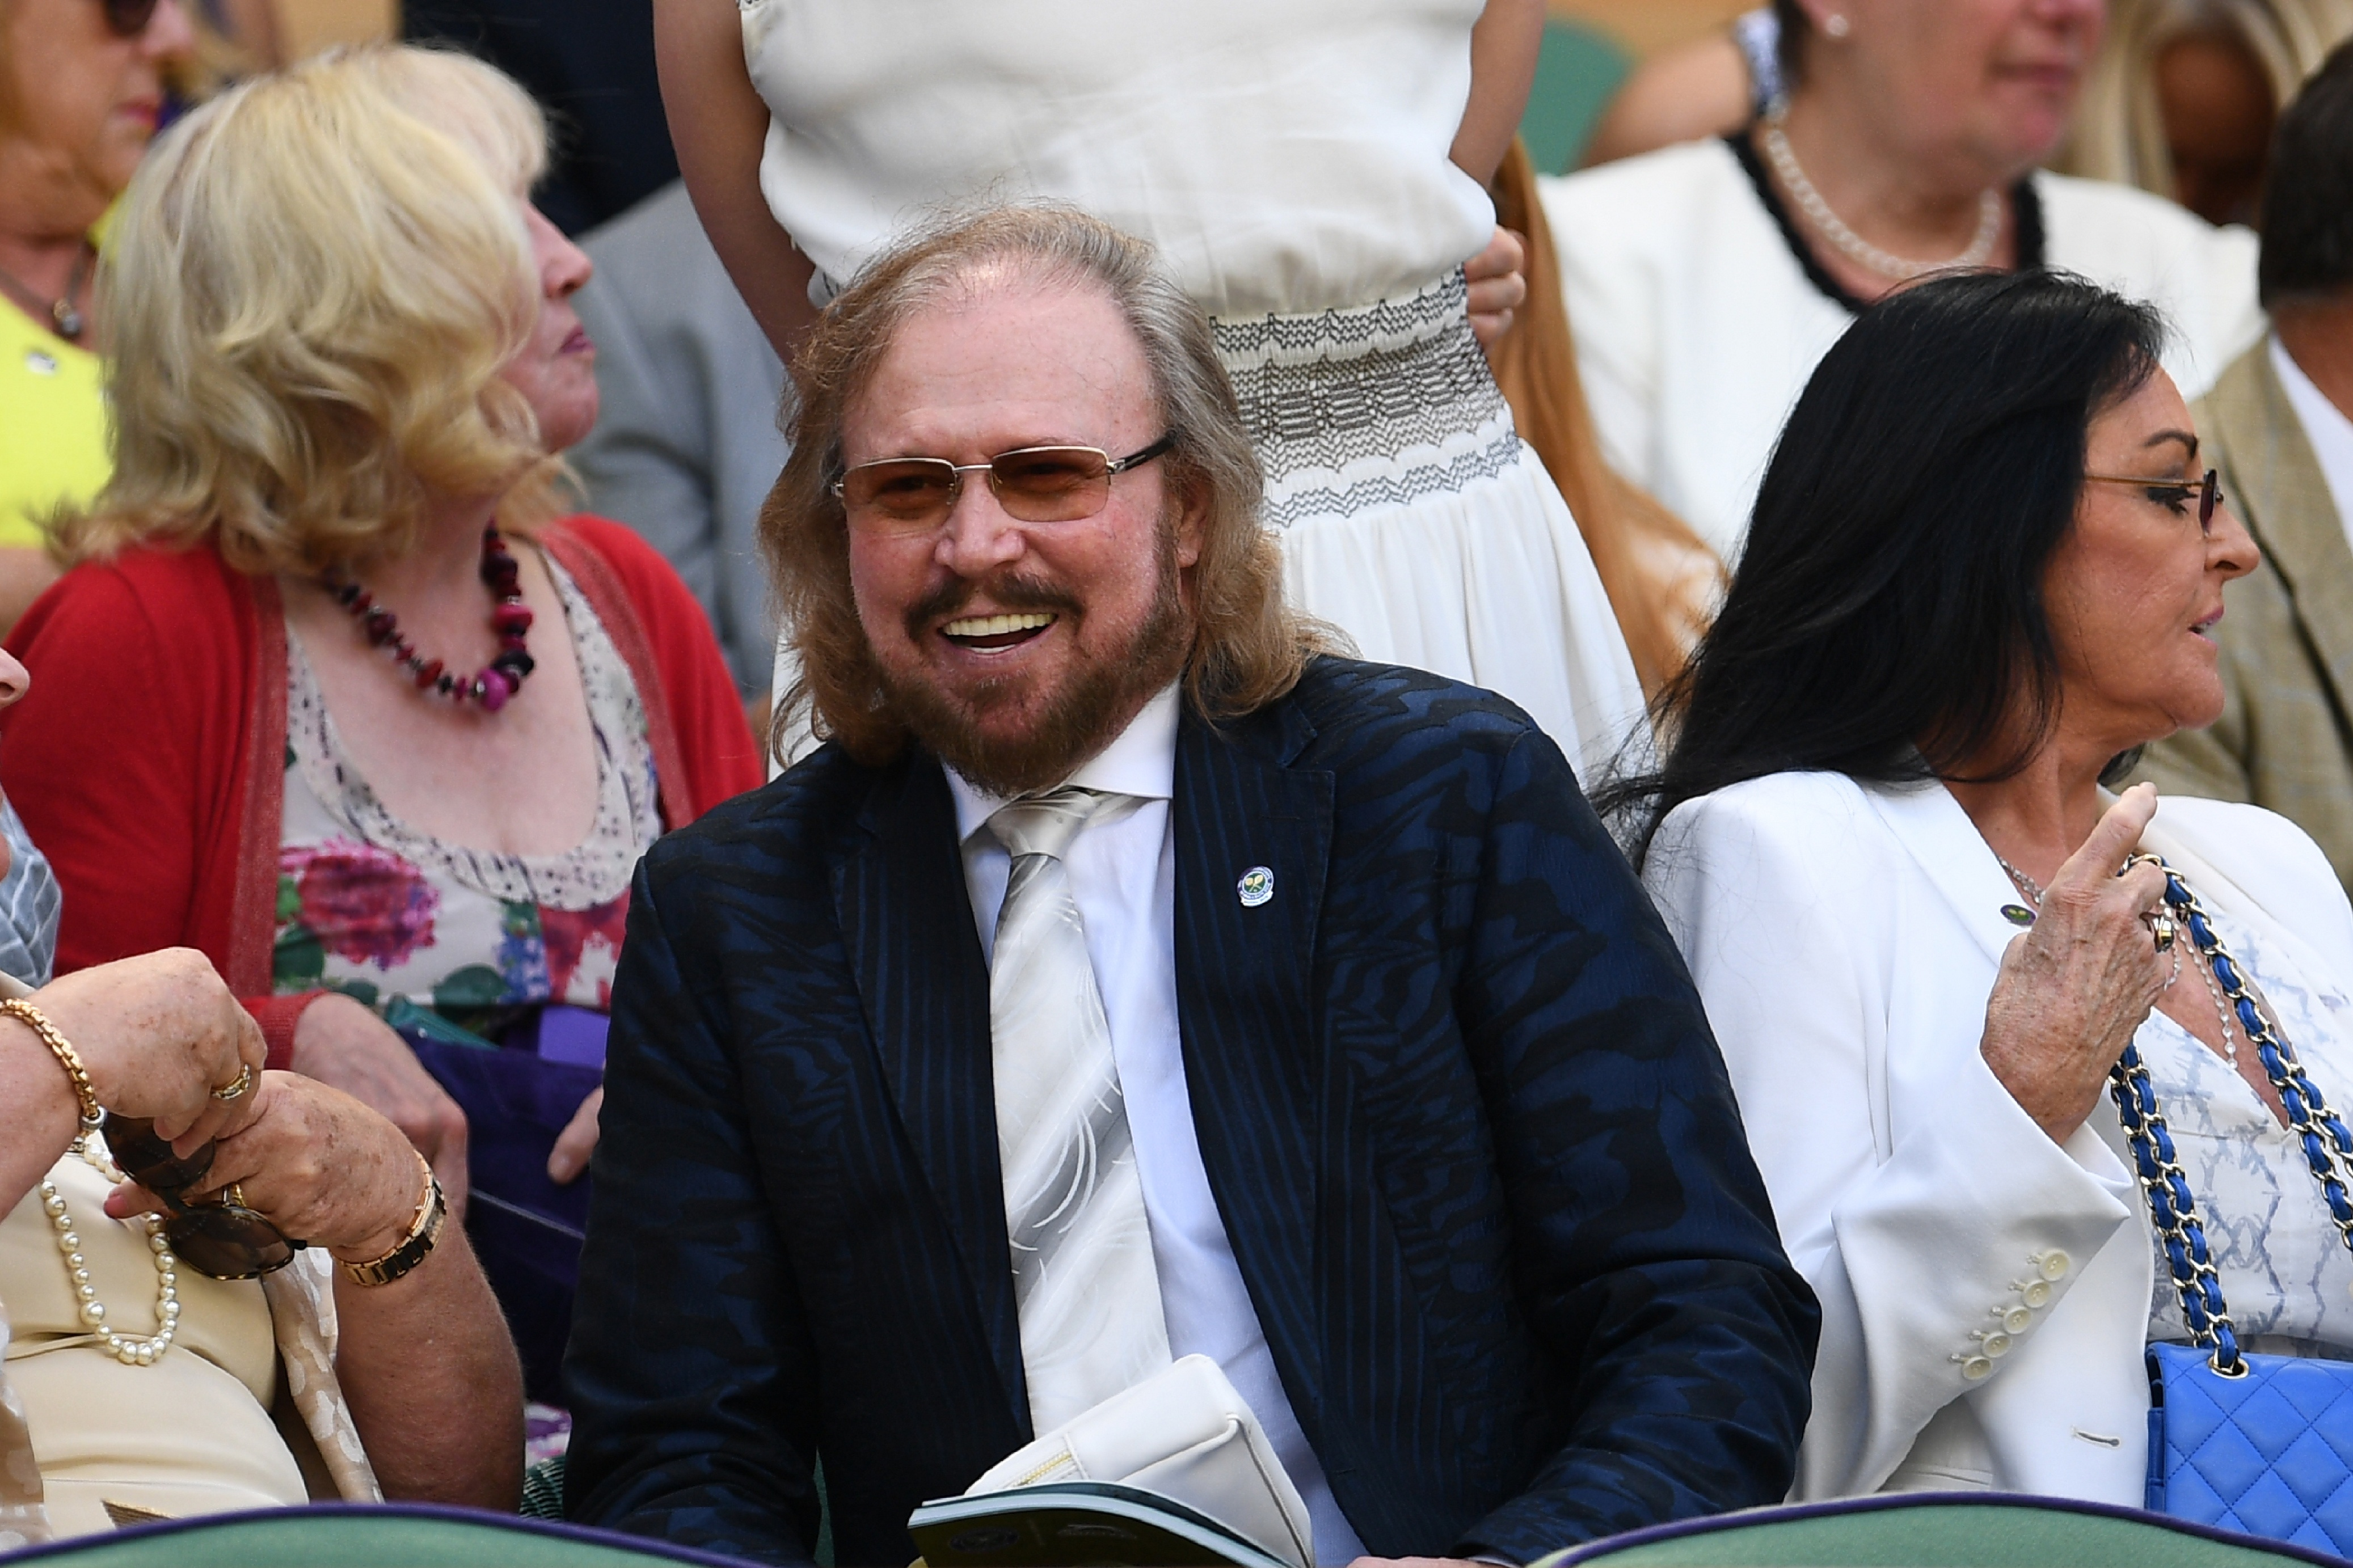 Barry Gibb, only surviving member of the Bee Gees watches the women's semi-final match on the eleventh day of the 2016 Wimbledon Championships at The All England Lawn Tennis Club in Wimbledon, southwest London, on July 7, 2016. / AFP PHOTO / GLYN KIRK / RESTRICTED TO EDITORIAL USE